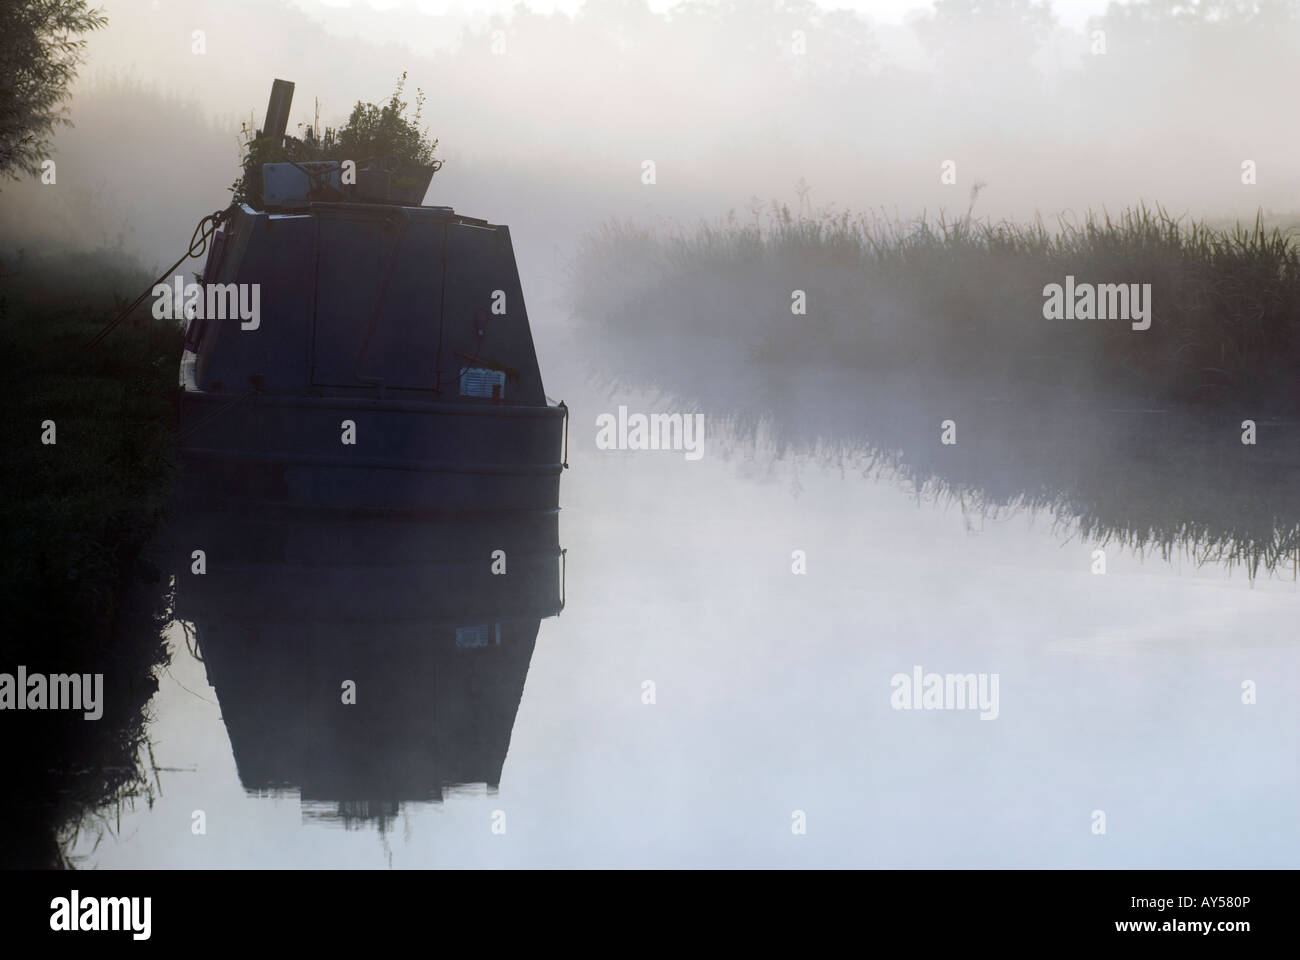 Doug Blane Moored narrowboat on a mysty noring on the Oxford CanalStock Photo